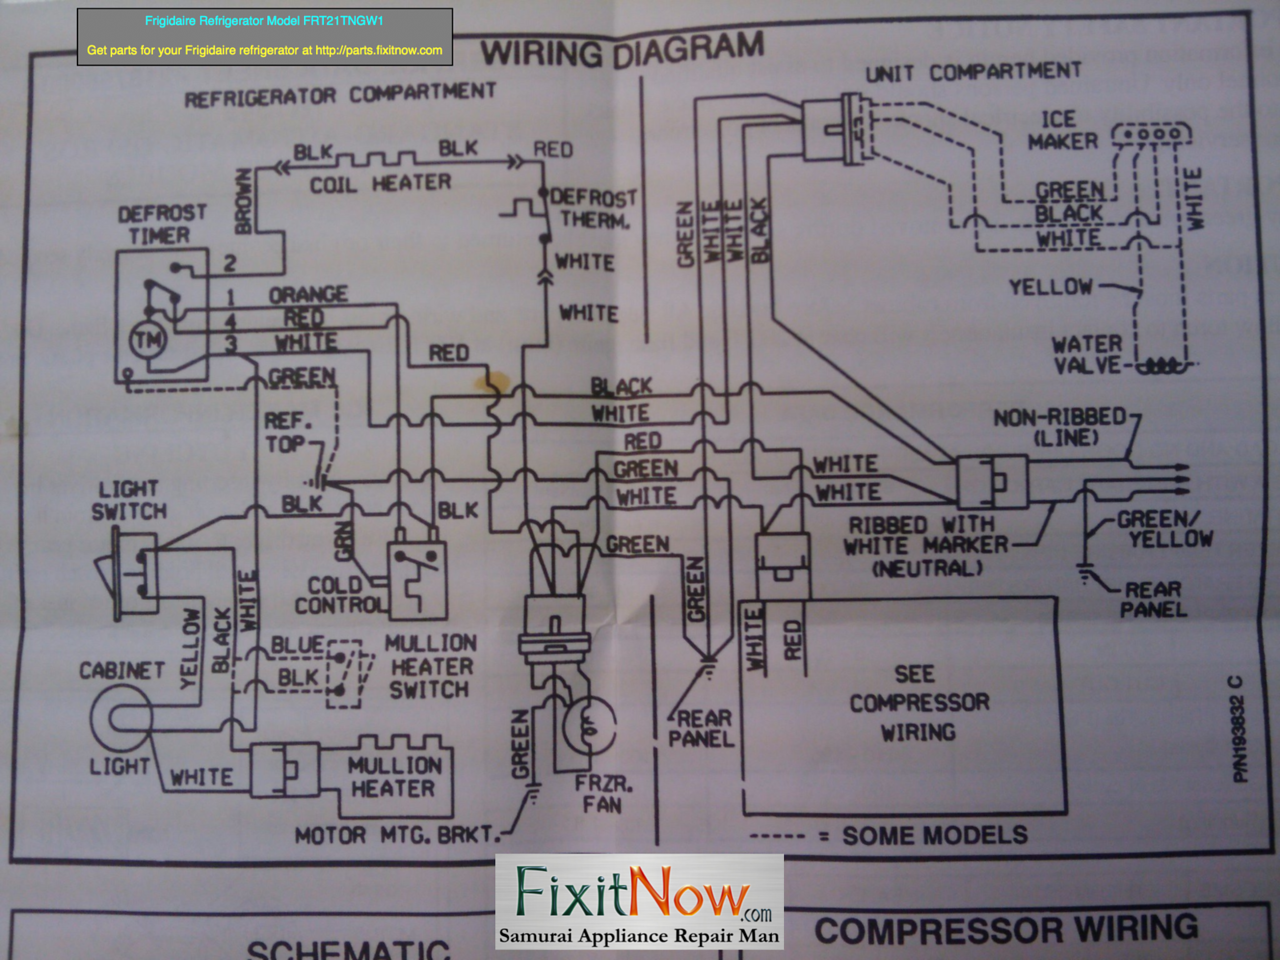 wiring diagrams and schematics appliantology rh appliantology smugmug com Hotpoint Washer Parts Diagram Hotpoint Range Wiring Diagram